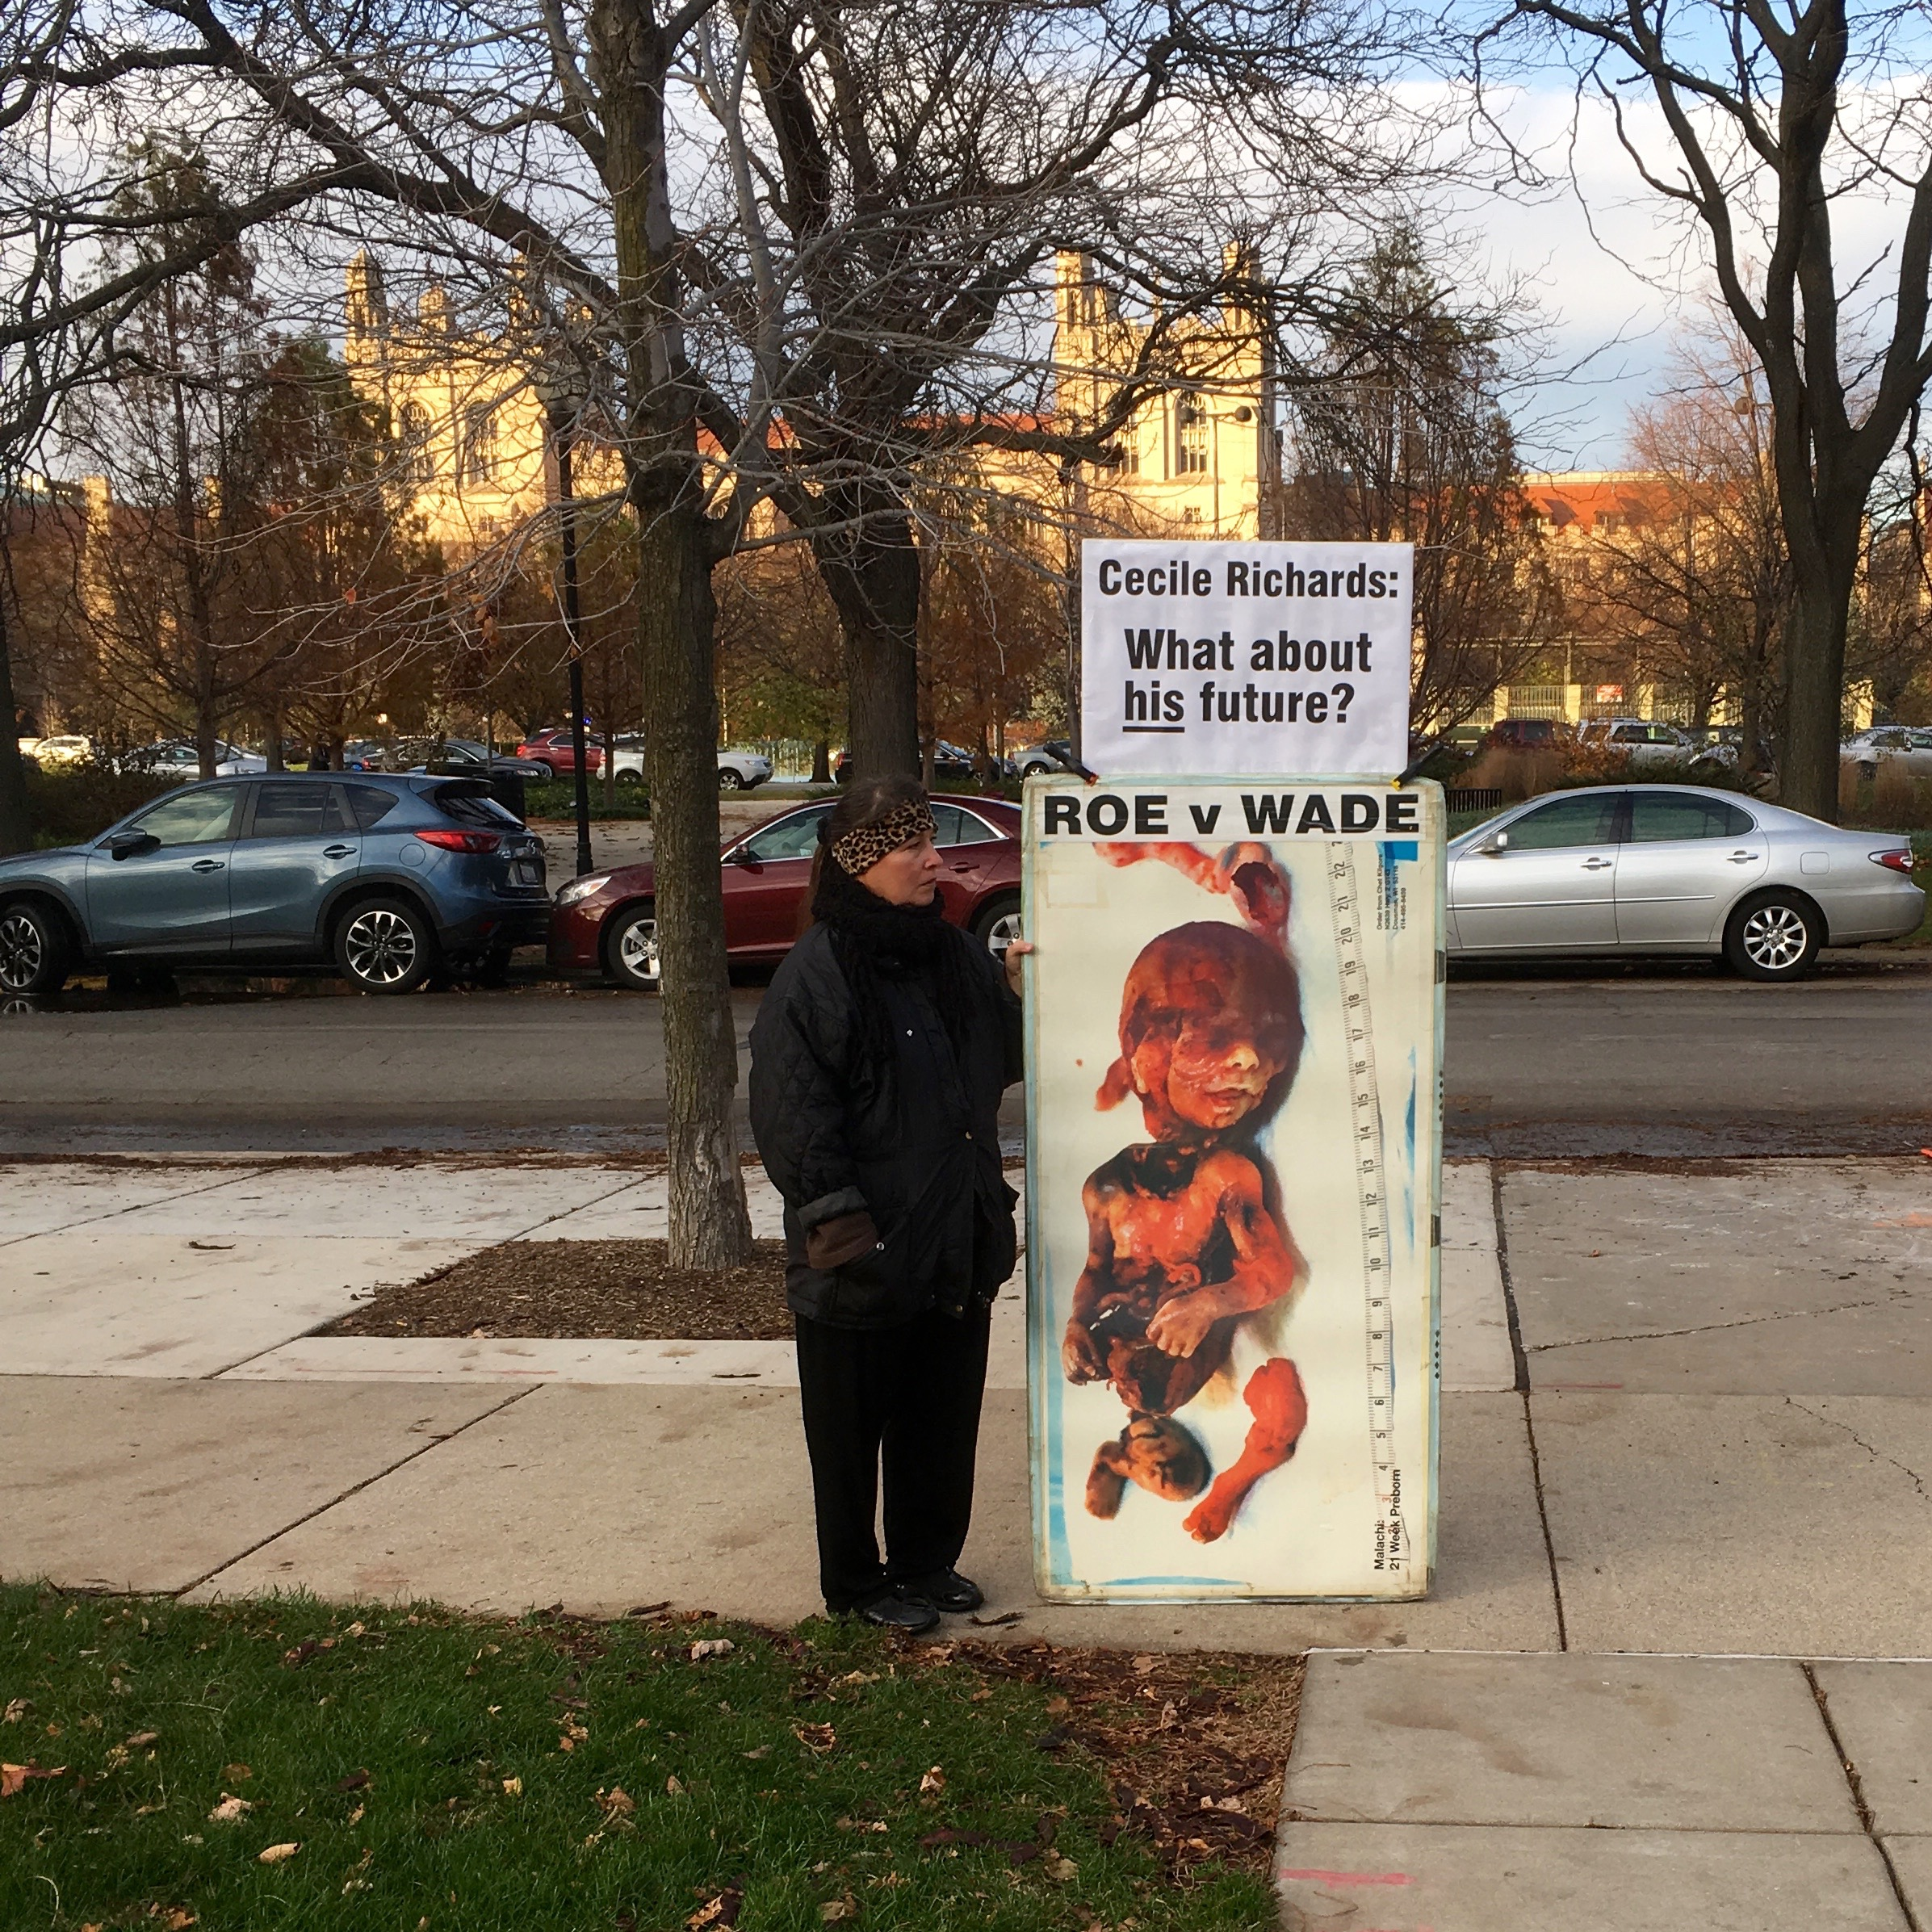 A protester outside the law school